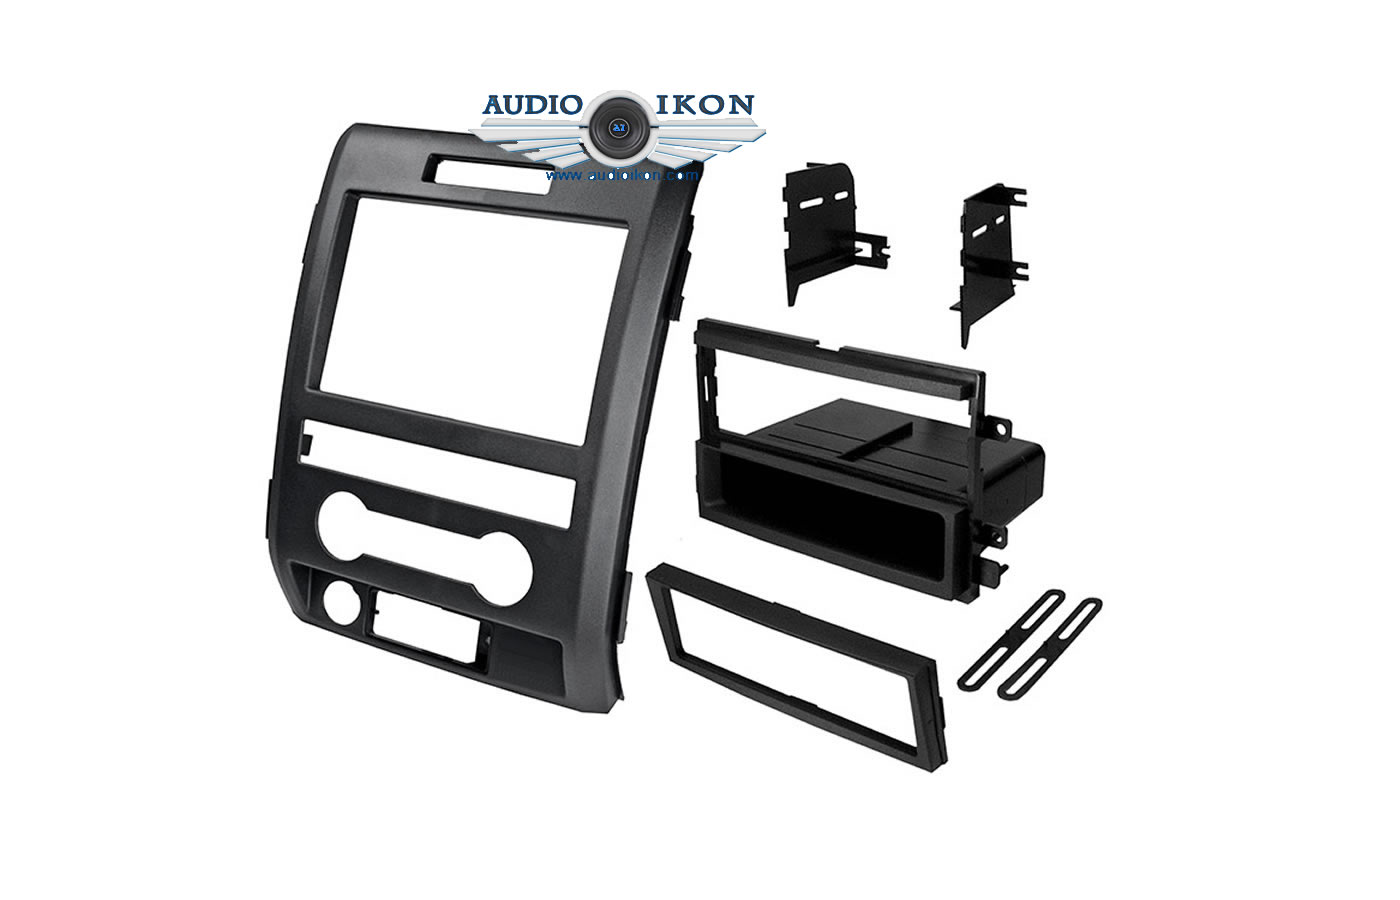 American International FMK542 Double DIN Radio Installation Kit For 04-13 Ford